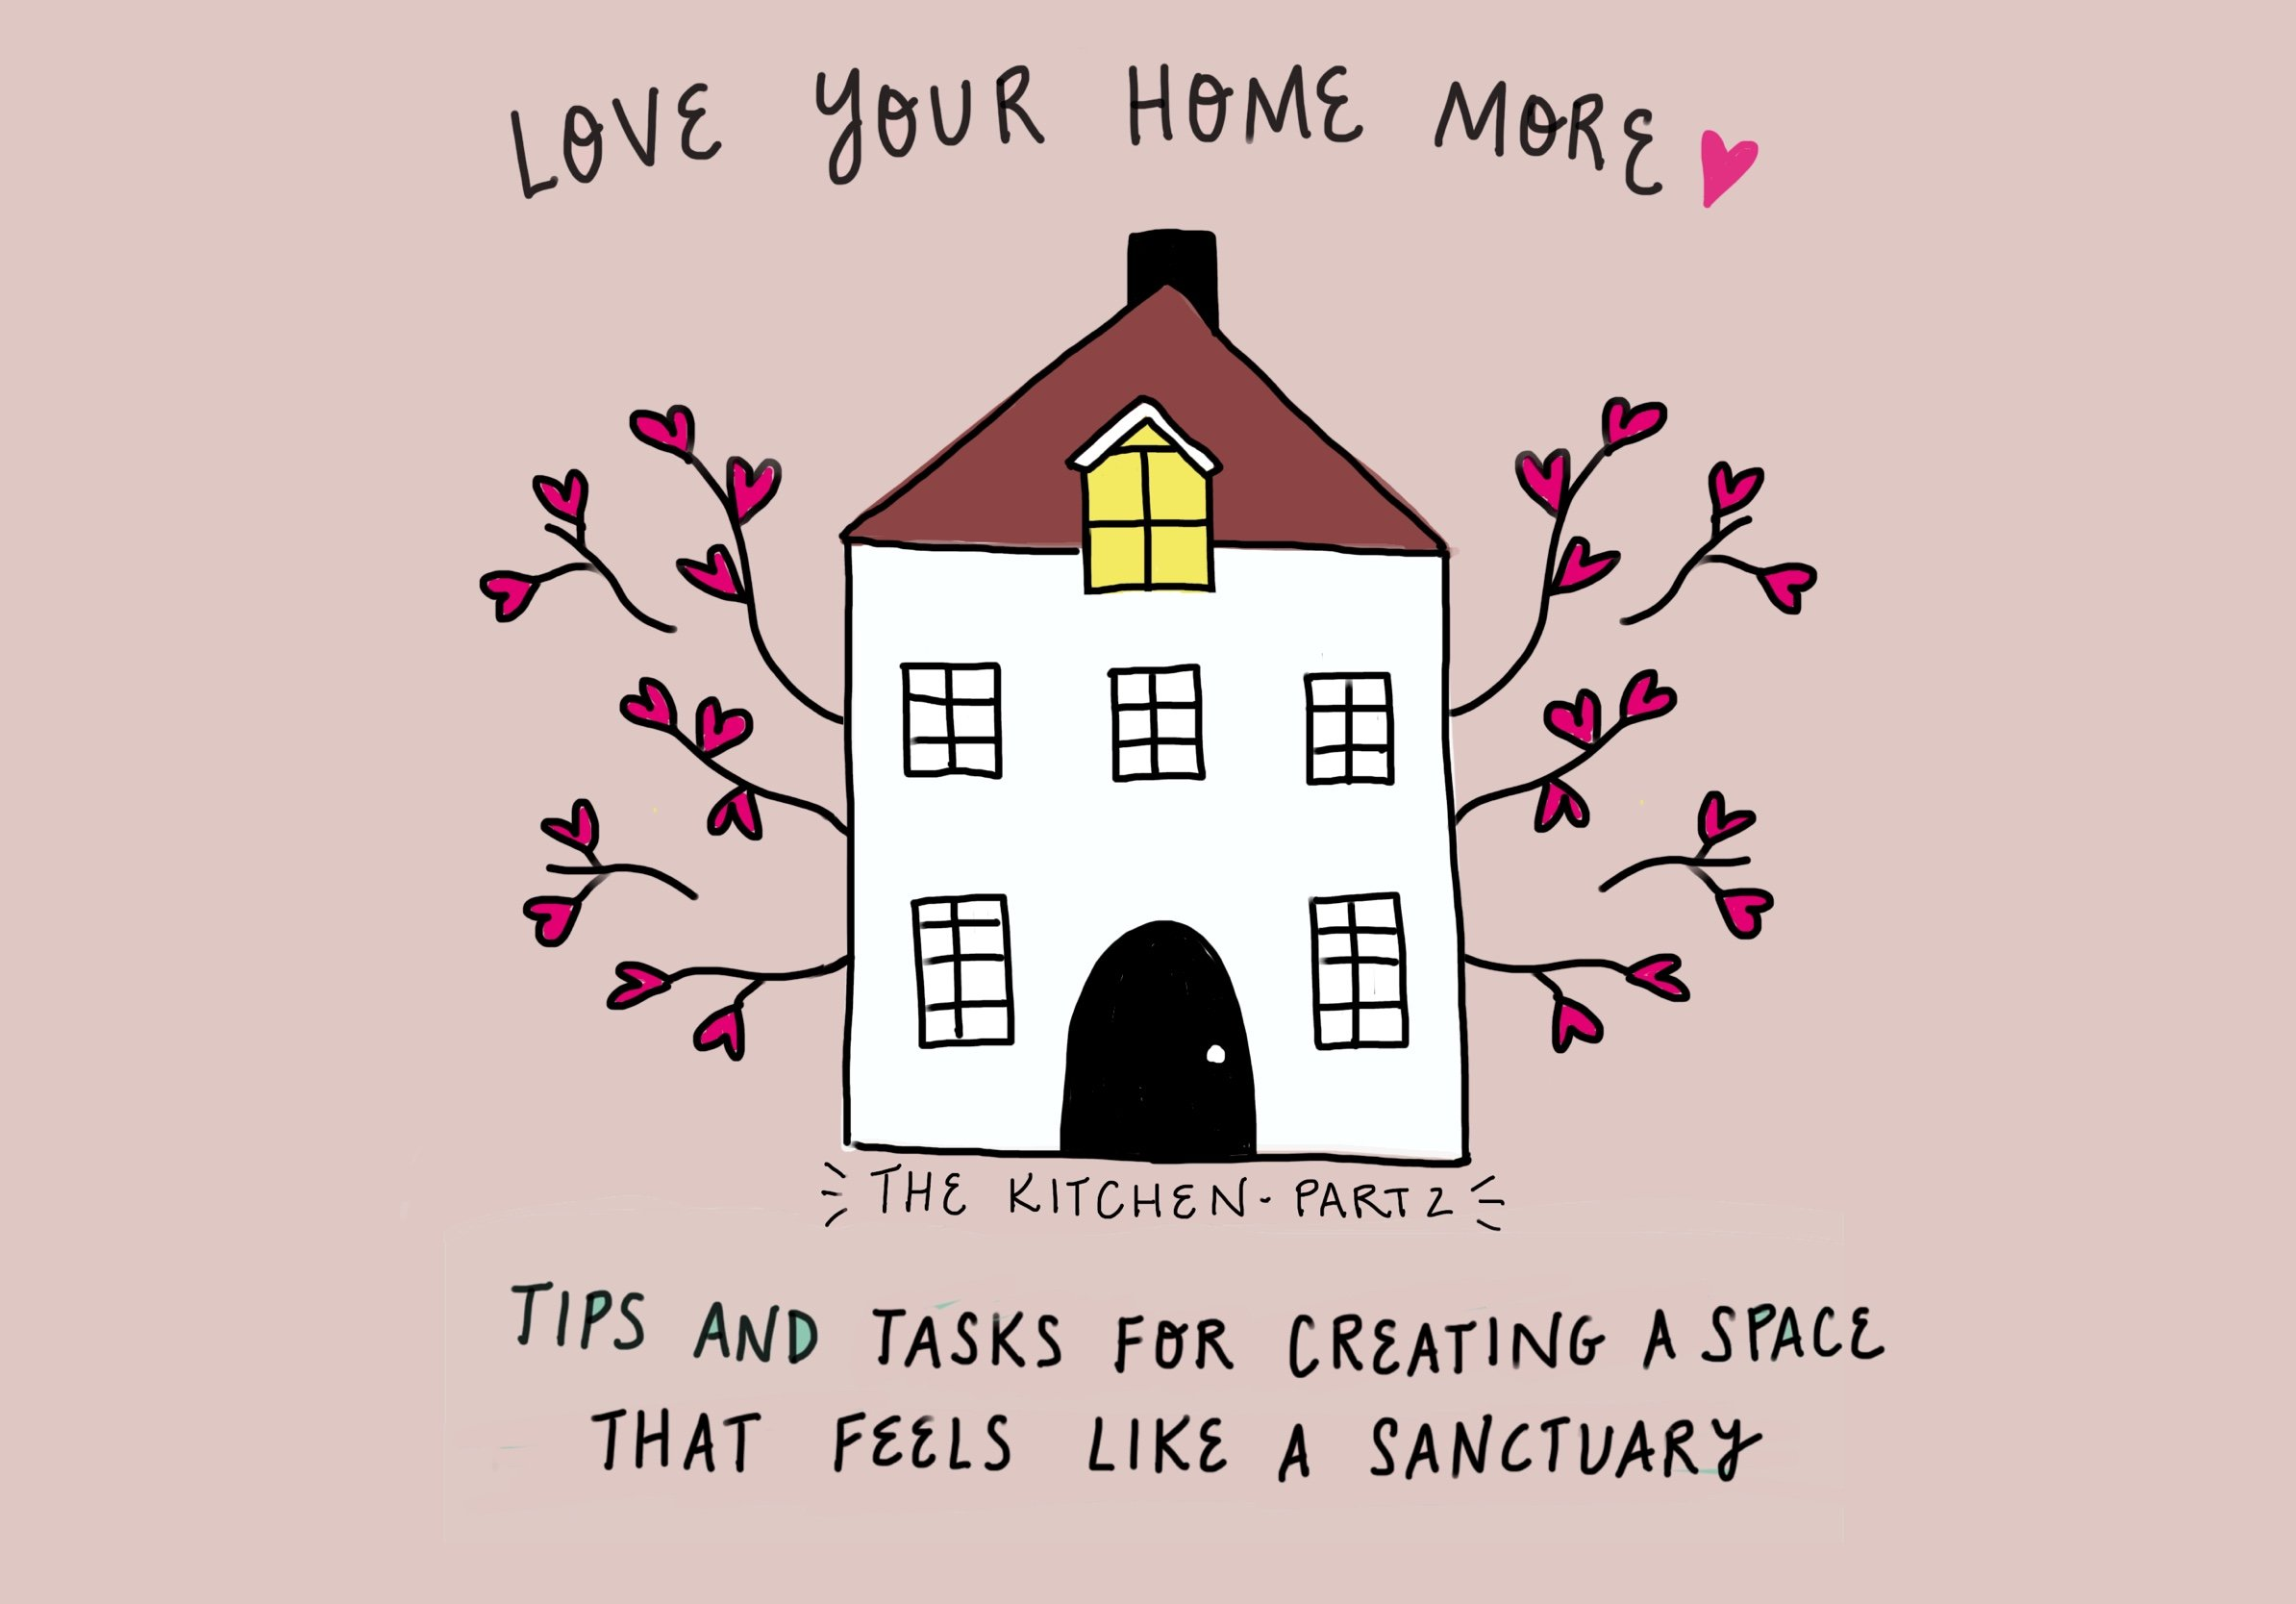 Love your home more: tips and tasks for creating a space that feels like a sanctuary week 4: (The Rest Of) The Kitchen by feelgood fibers